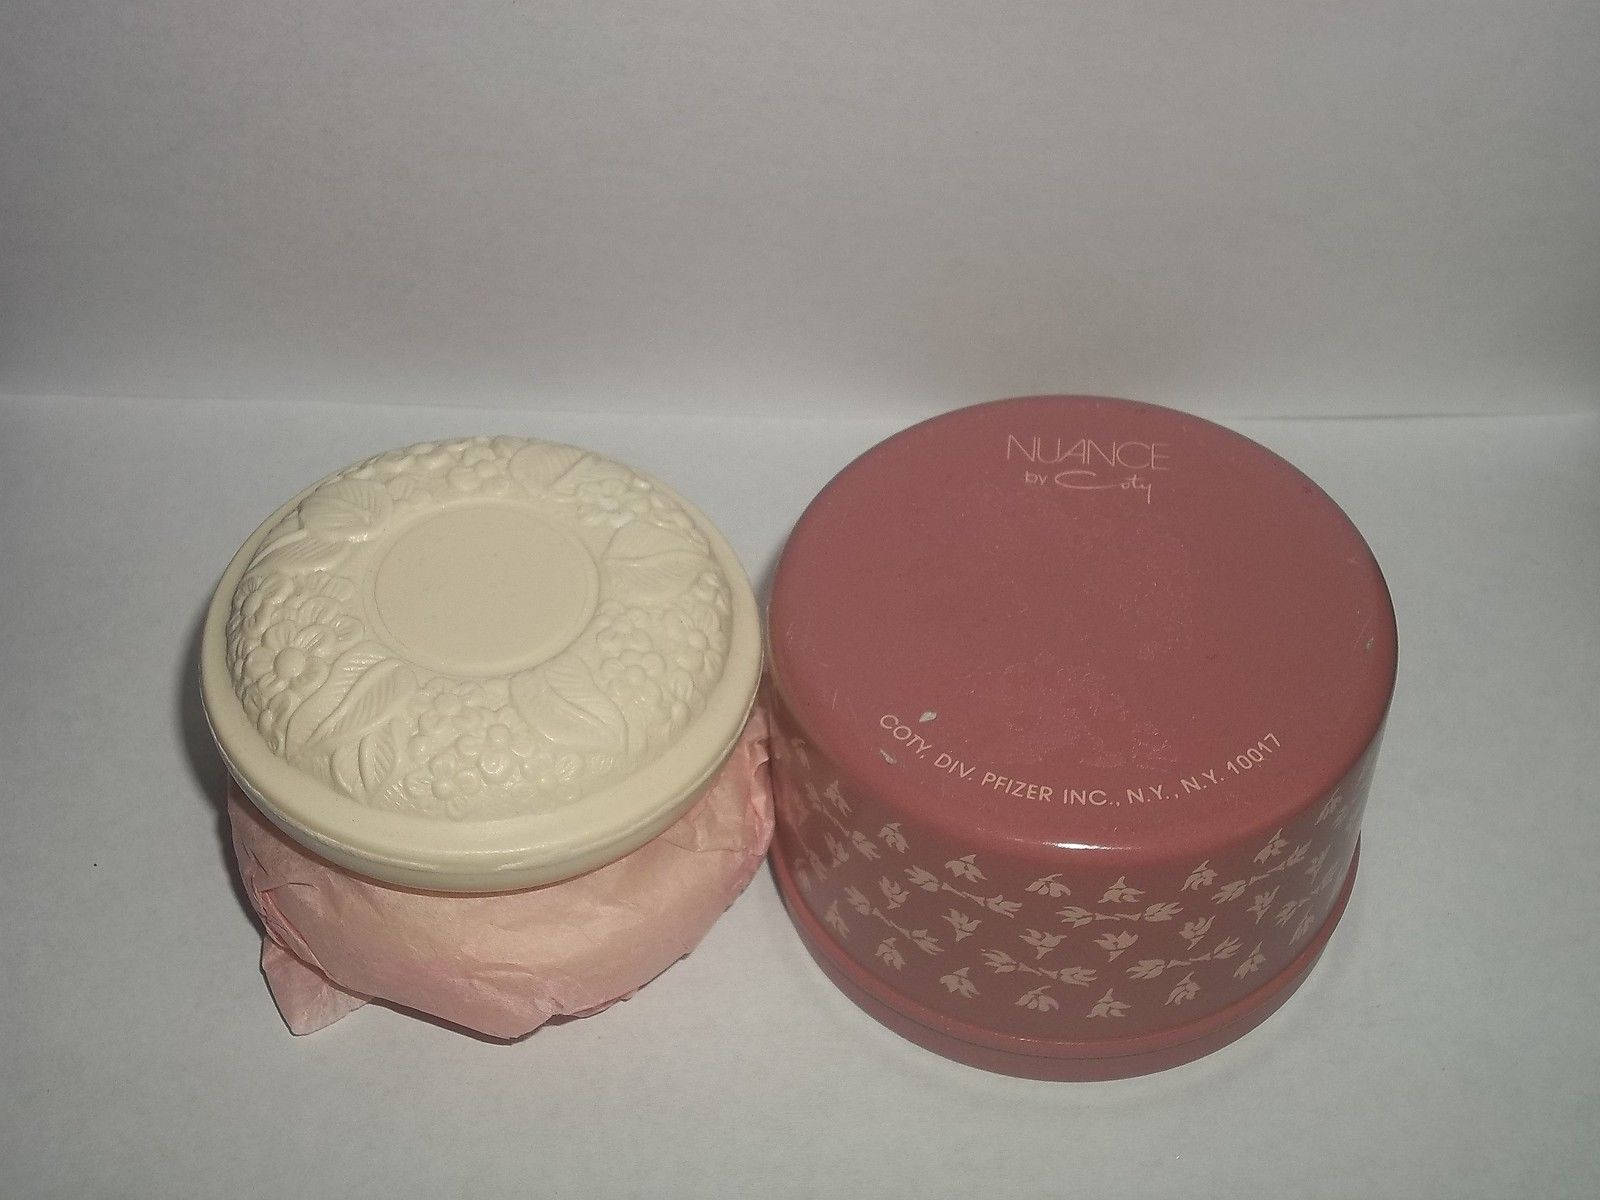 2 Coty NUANCE Bath Soap Bars Women Tin Can 2.7 oz Discontinued Hard to Find New - $17.82